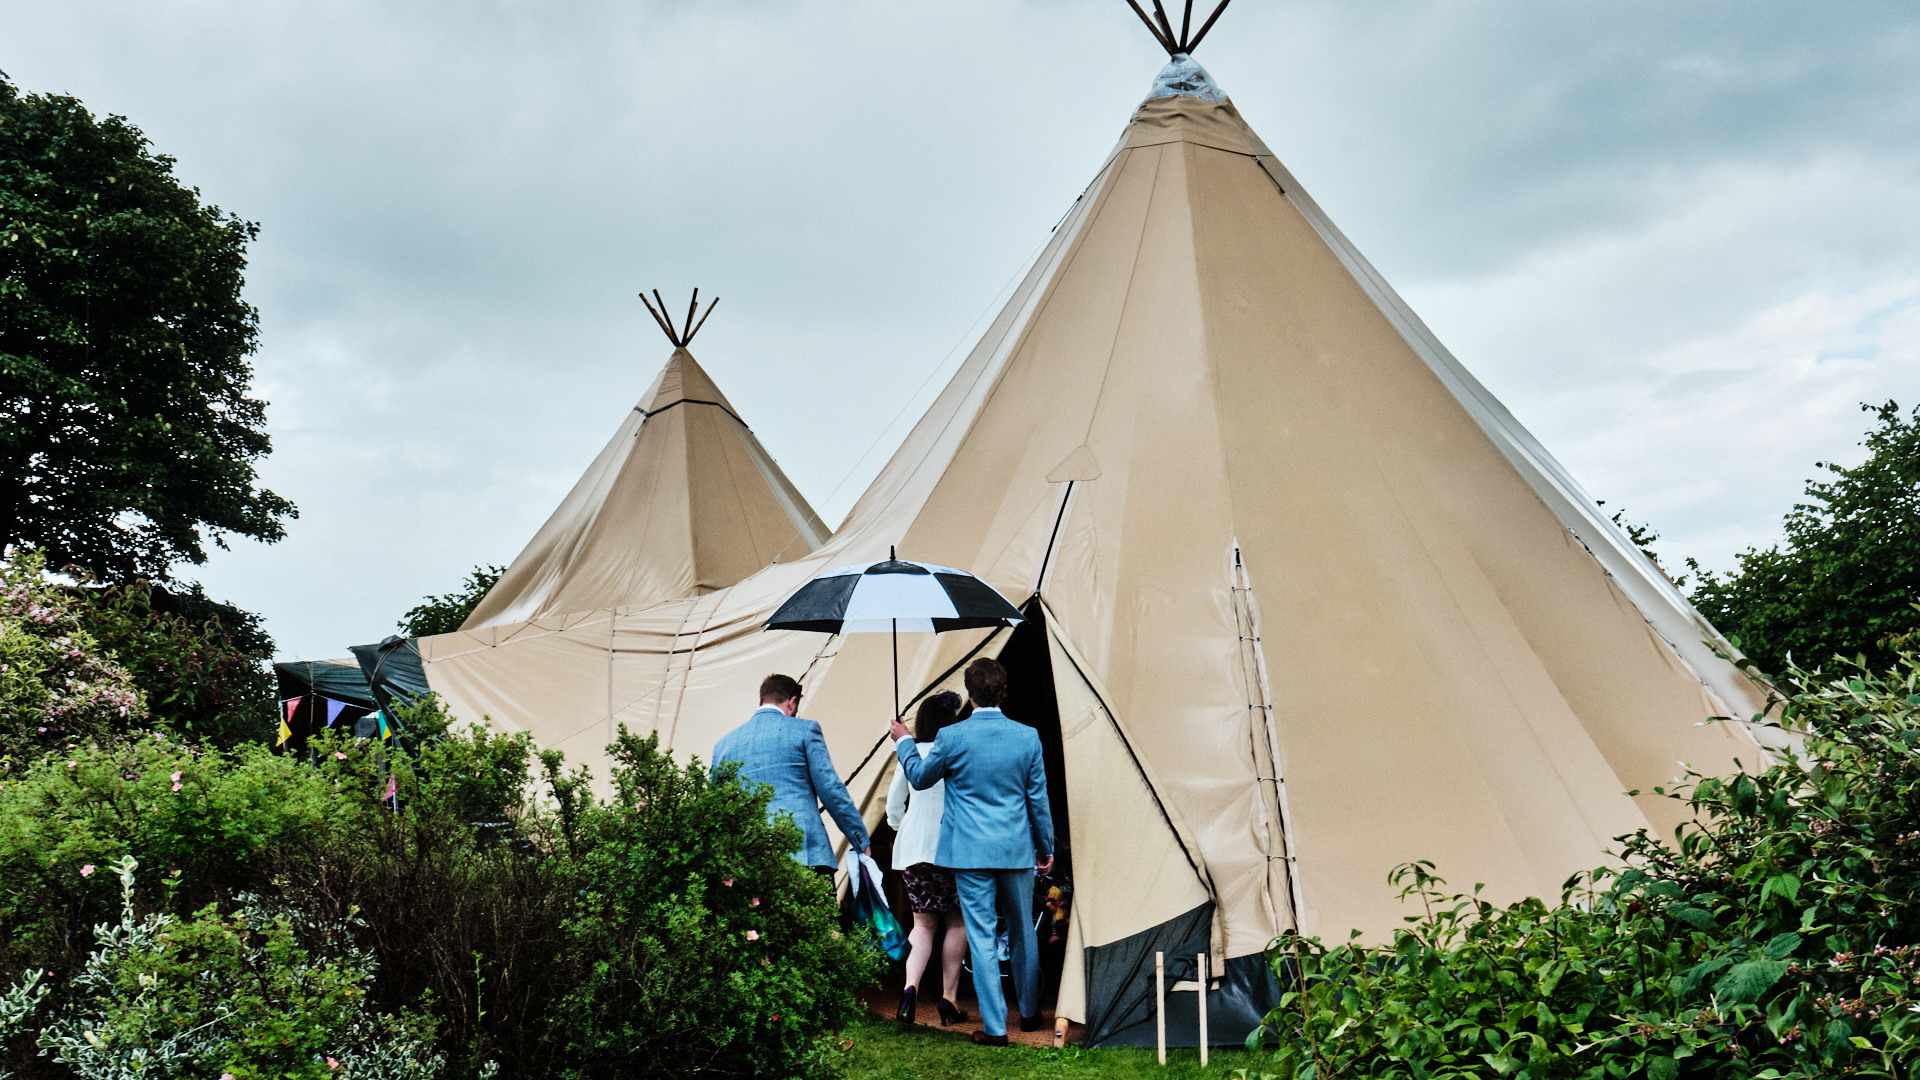 Colour photograph of a double tipi set up in a garden with people entering under umbrellas in the rain